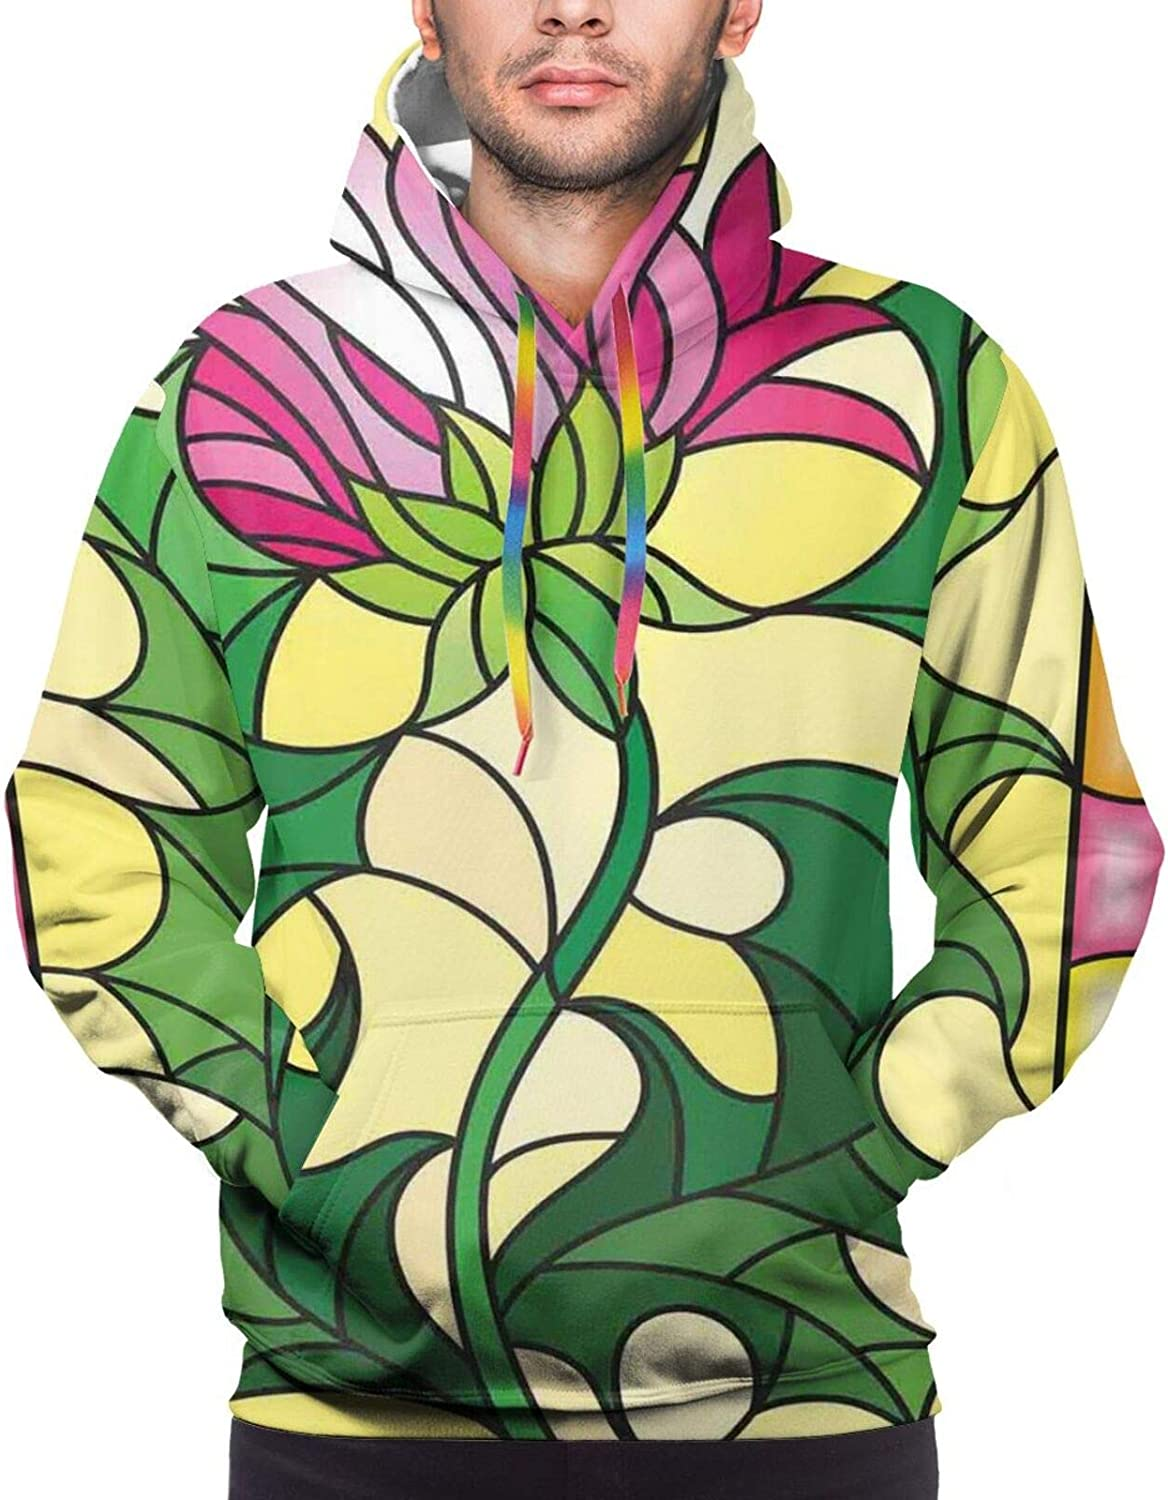 Men's Hoodies Sweatshirts,Colorful Spring Theme with Sunflowers Daisy Chamomile Petals Summer Bluebells Motif